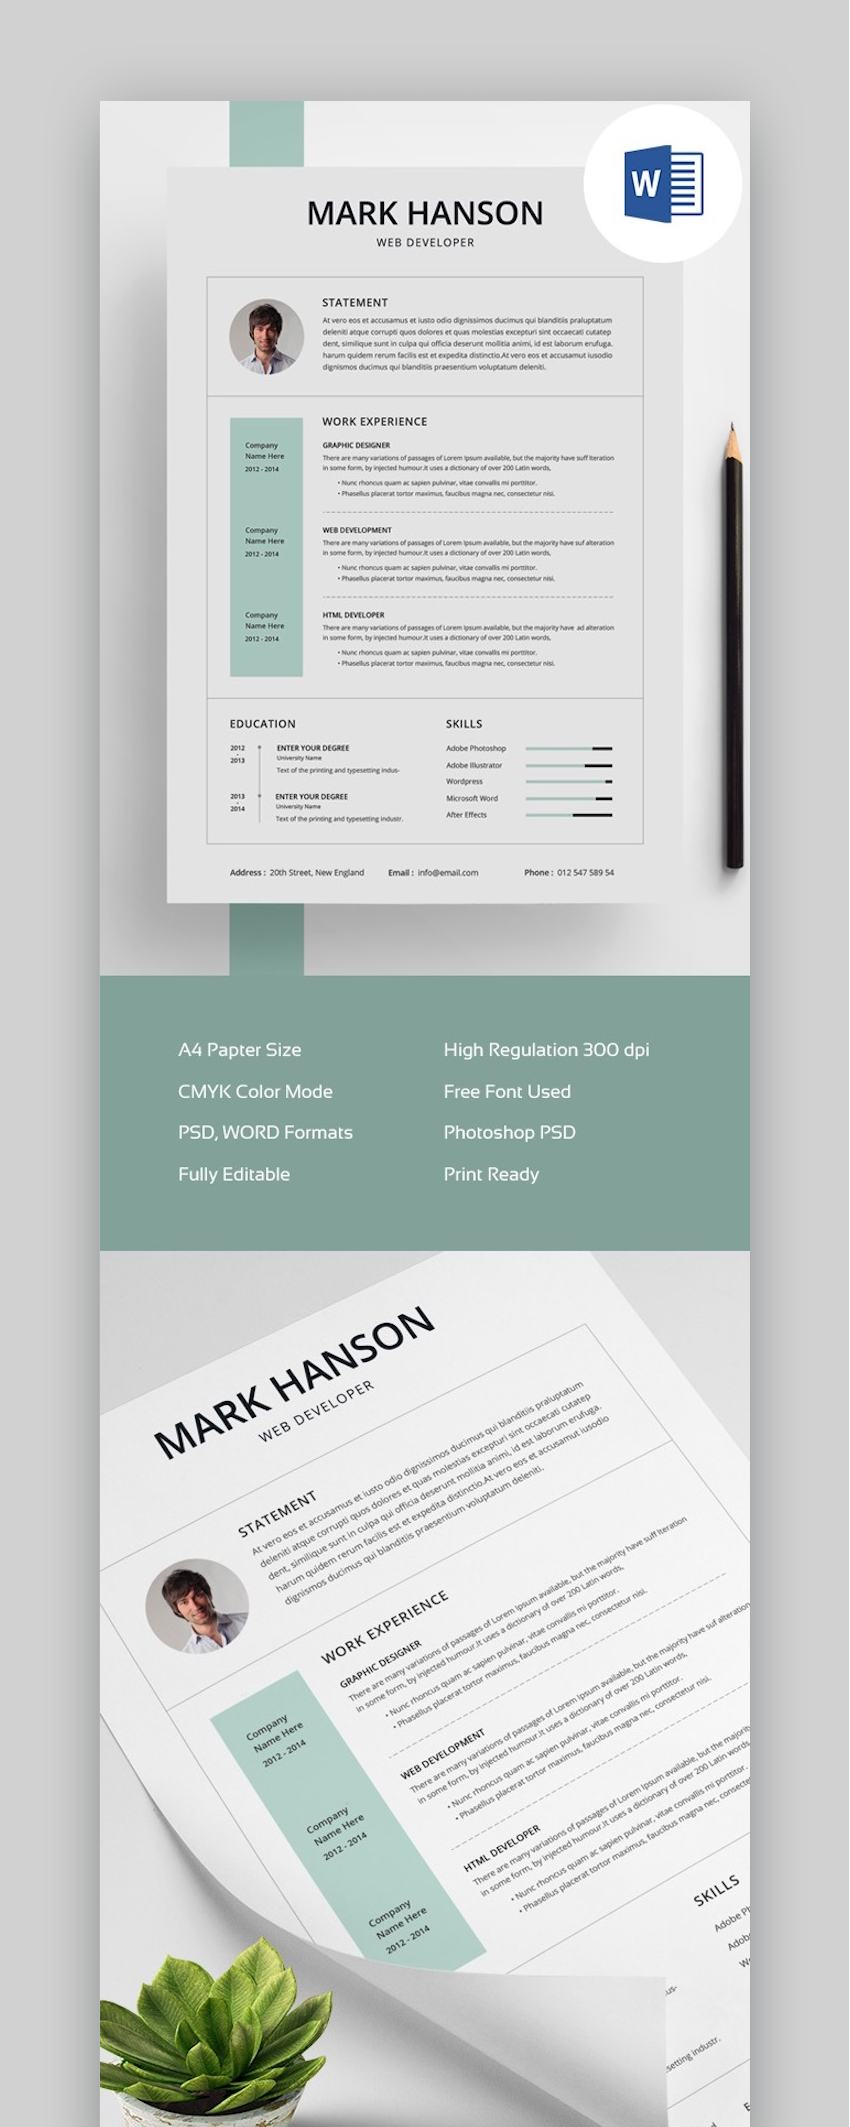 free creative resume templates word downloads for editable env clean template final Resume Free Creative Resume Templates Editable